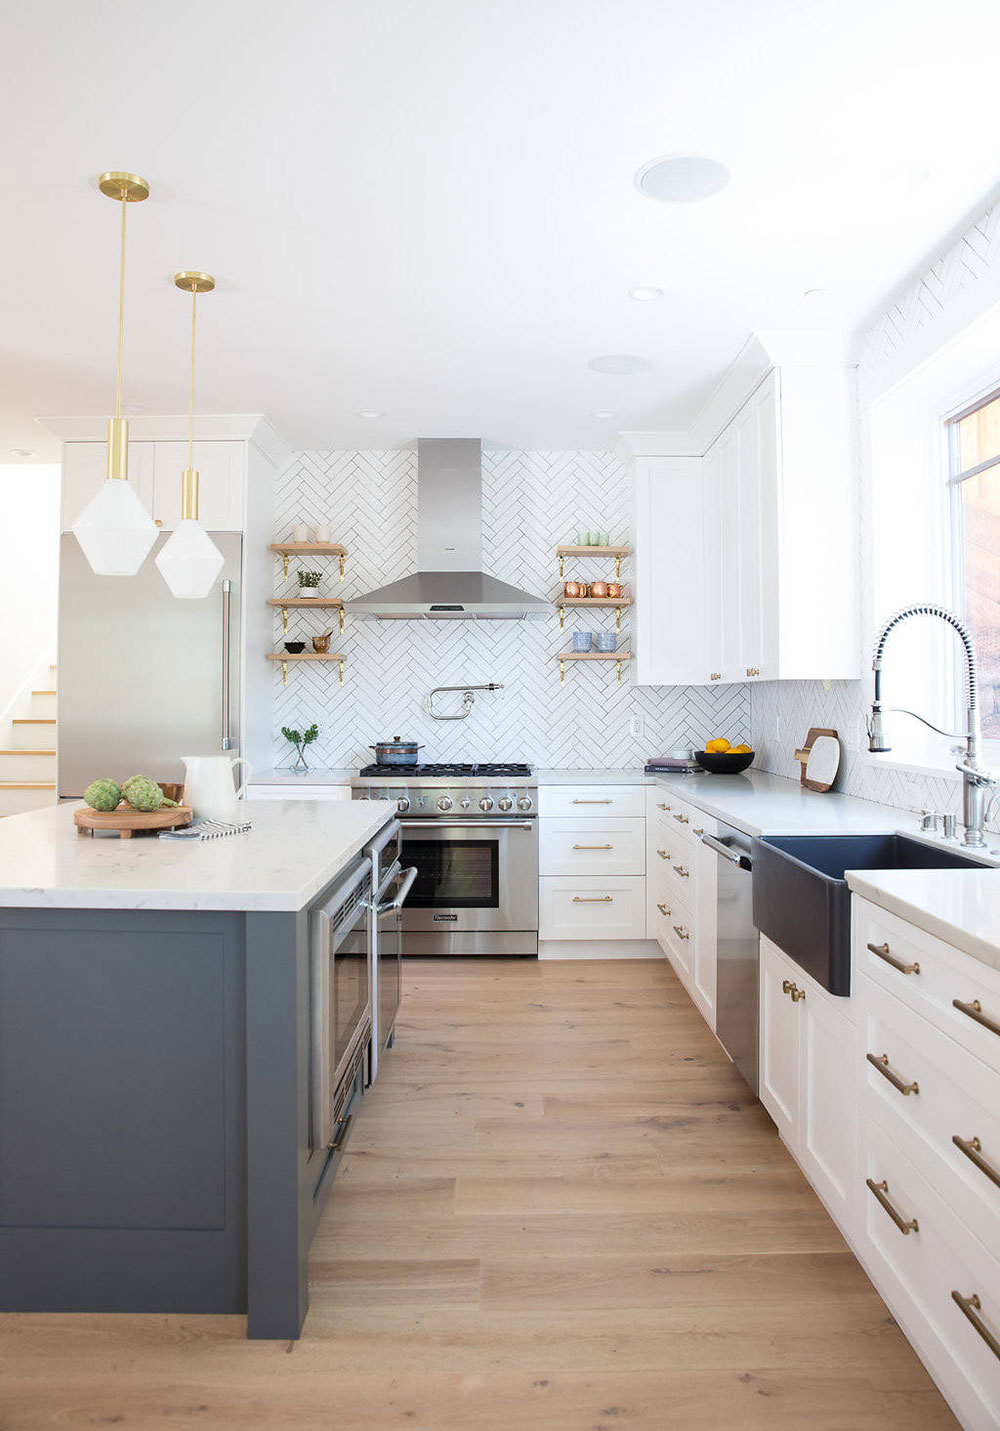 How much does it cost to paint kitchen cabinets? (Answered)